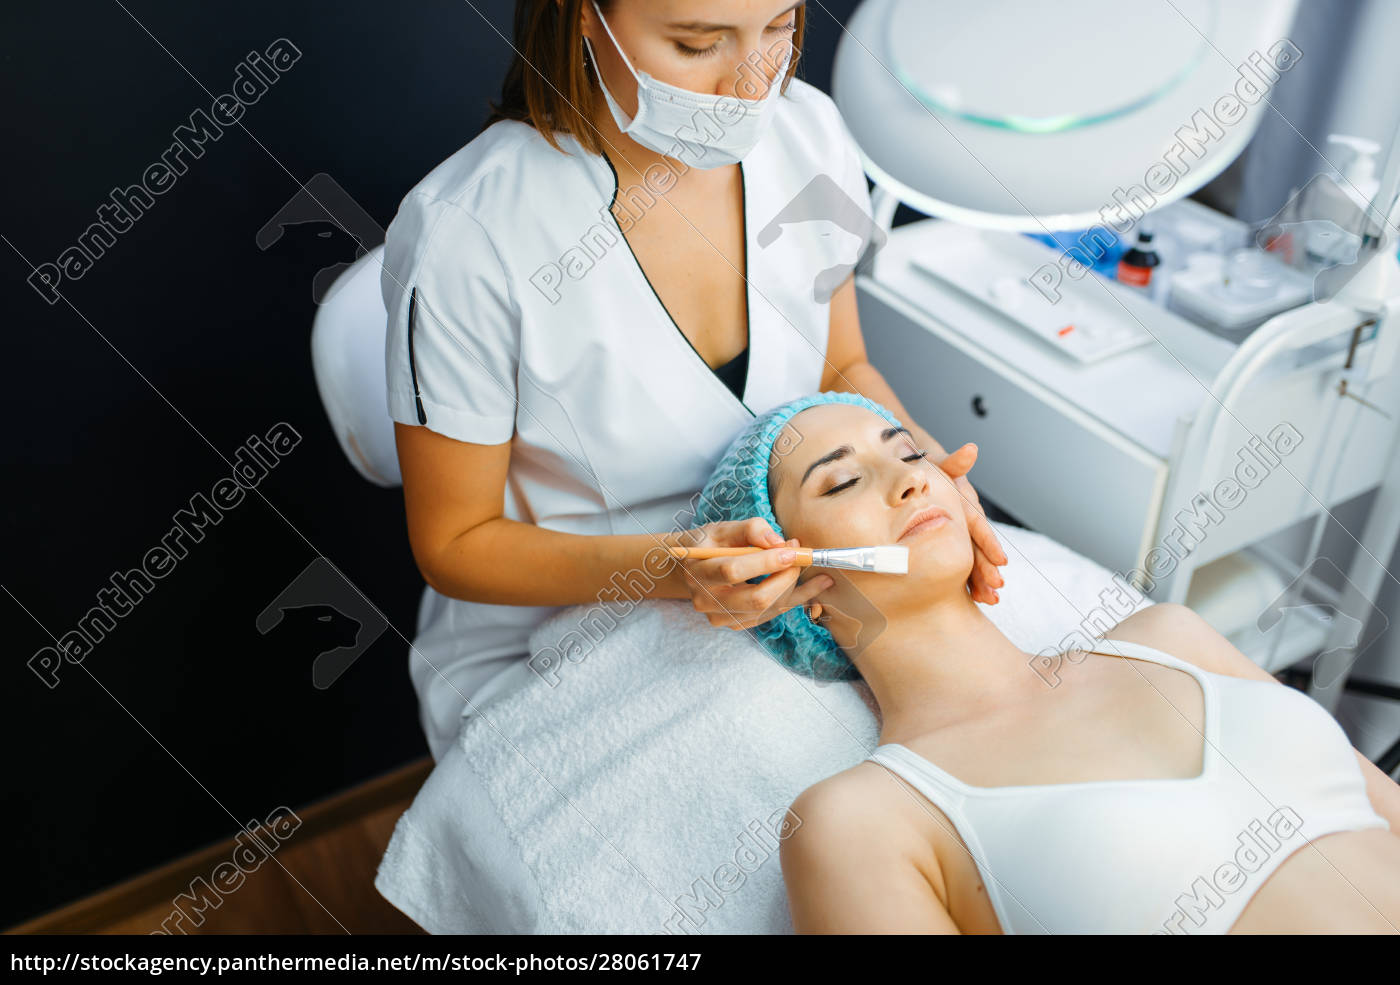 cosmetician, with, brush, cleans, facial, skin - 28061747